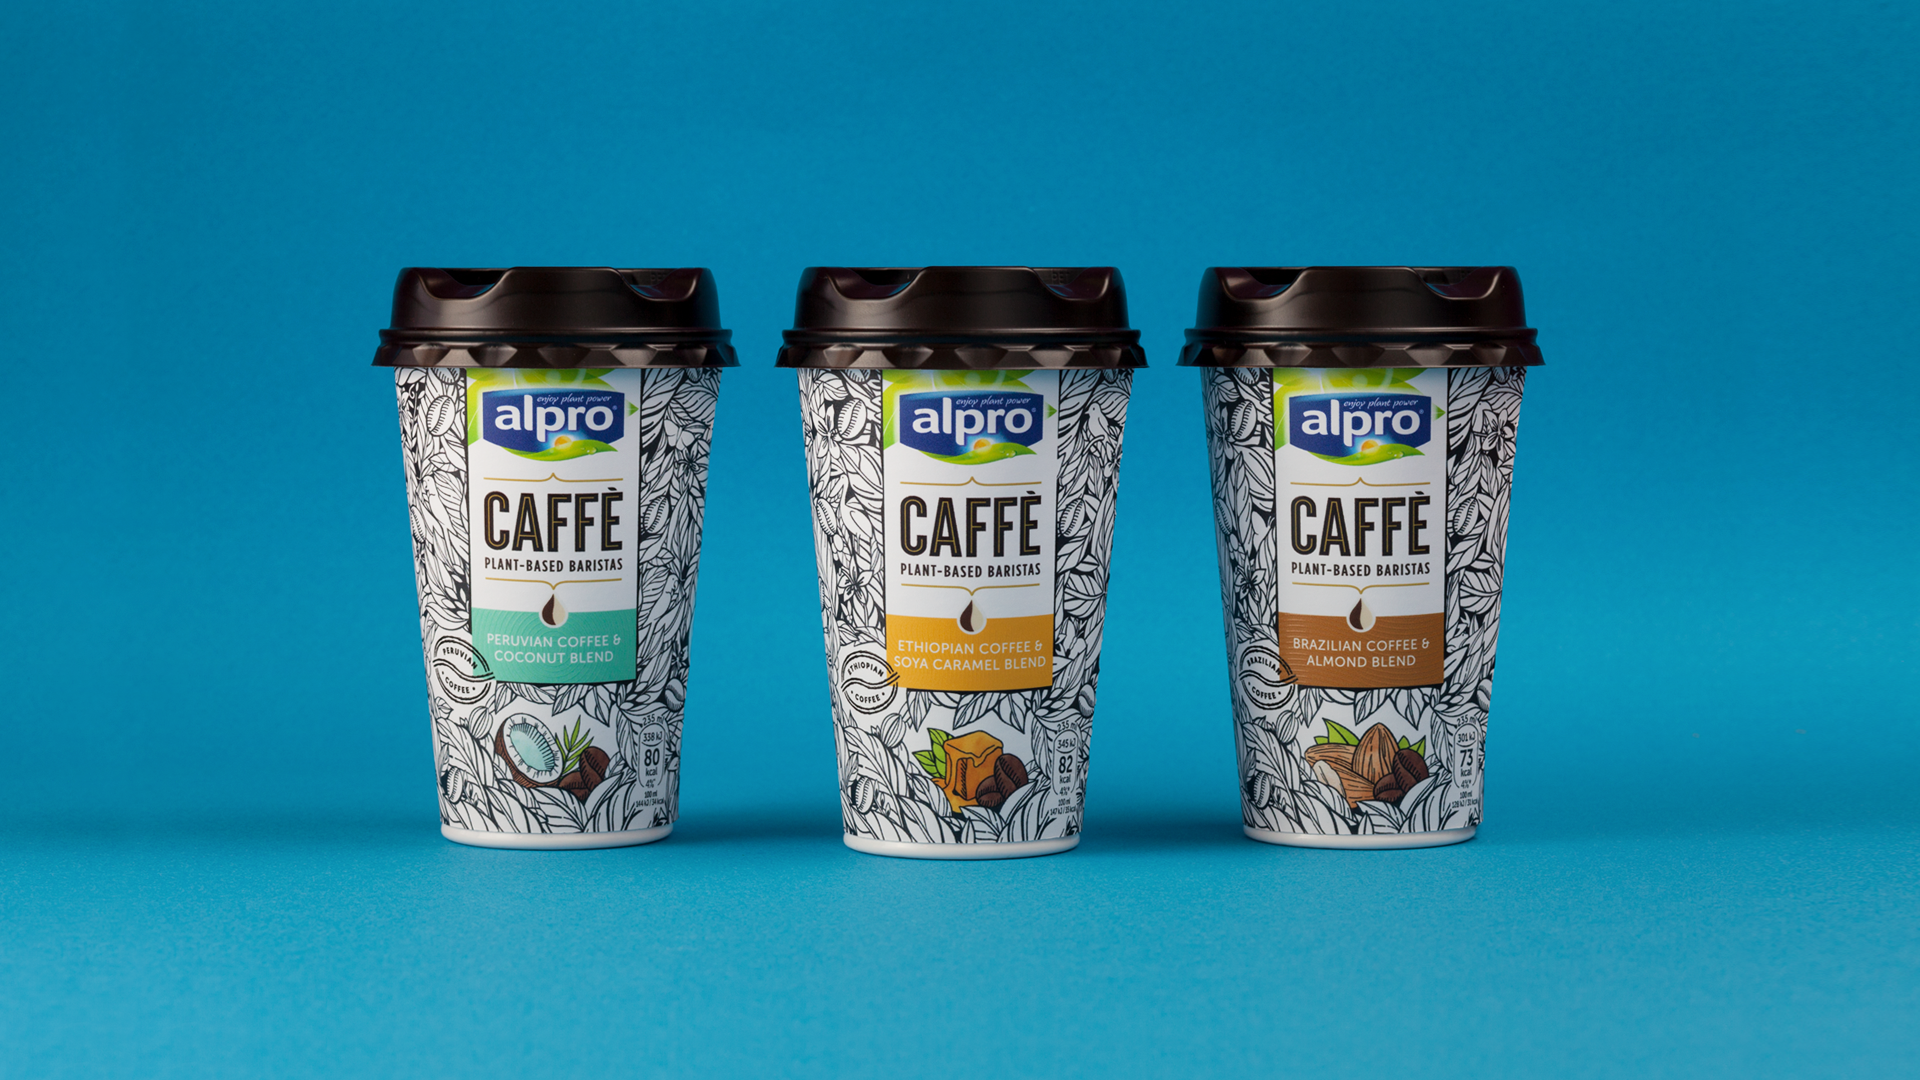 Alpro Caffè flavors - Coconut, Soya Caramel, Almond | Image courtesy elmwood.com, illustrated by Maggie Enterrios